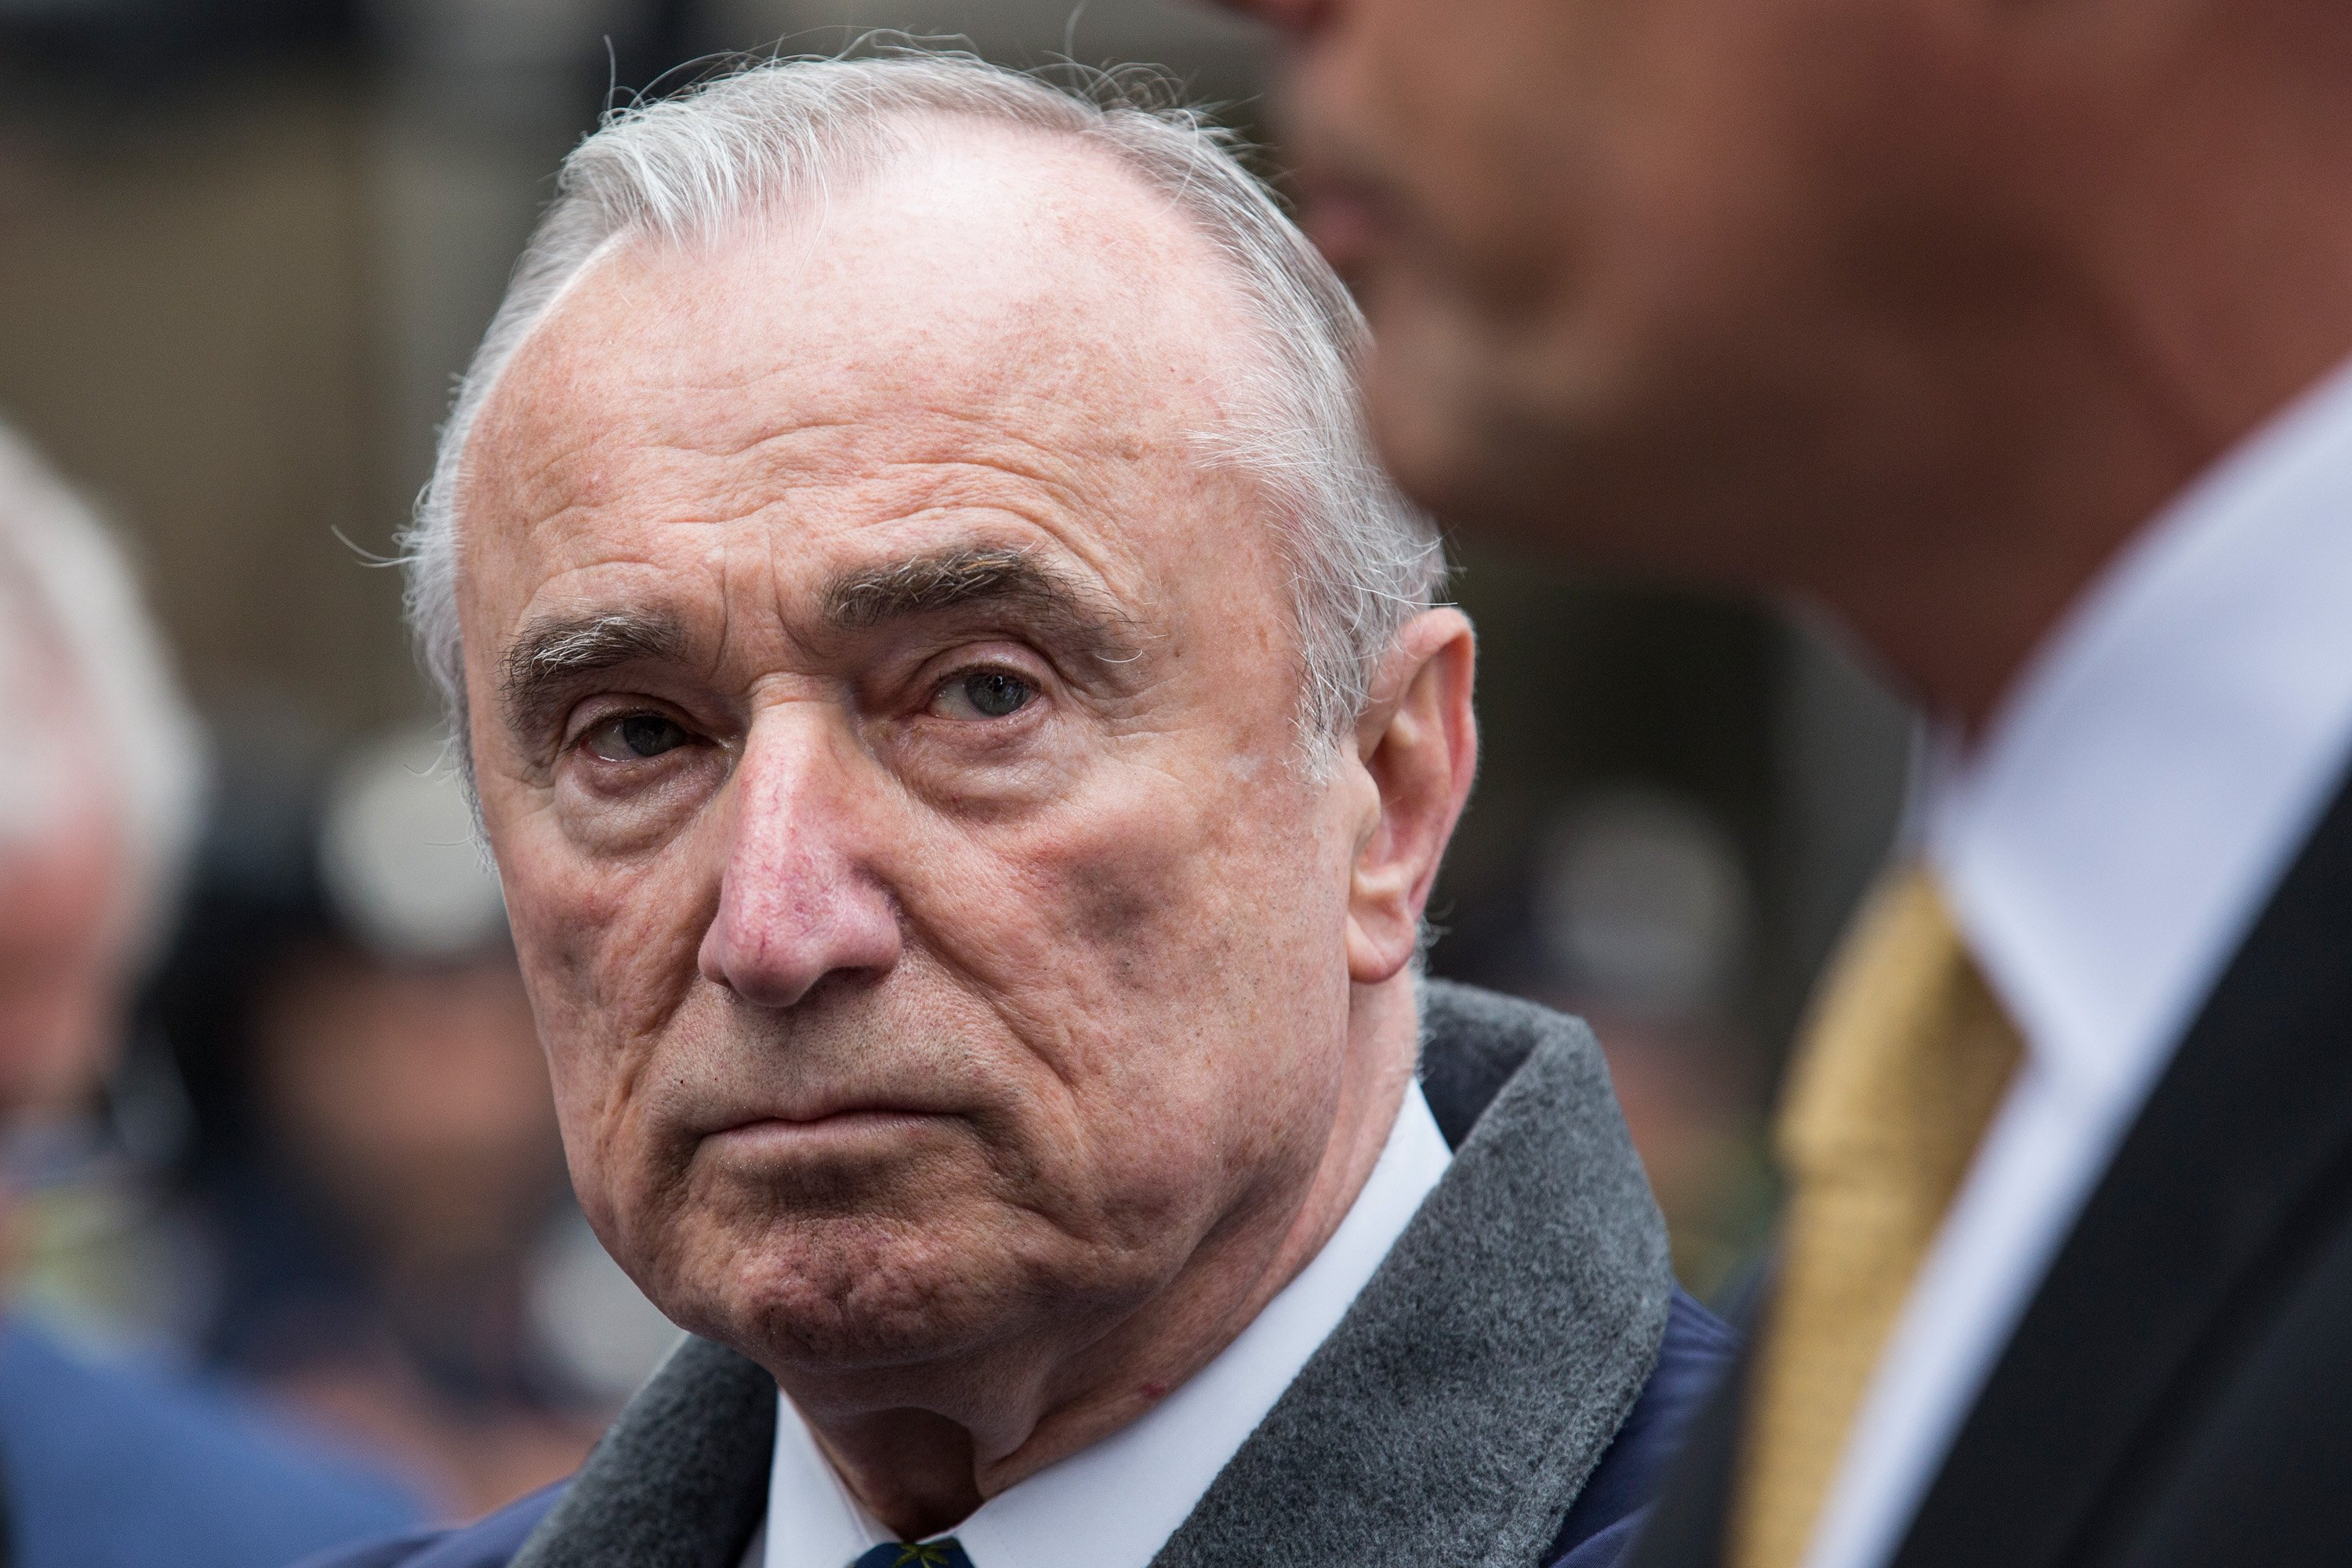 NEW YORK, NY - MAY 13: New York Police Department Commissioner Bill Bratton speaks at a press briefing after a hammer-wielding attacker assaulted a police officer on May 13, 2015 in New York City. The attacker was shot twice by a police officer and is currently in the hospital undergoing medical treatment. (Photo by Andrew Burton/Getty Images)